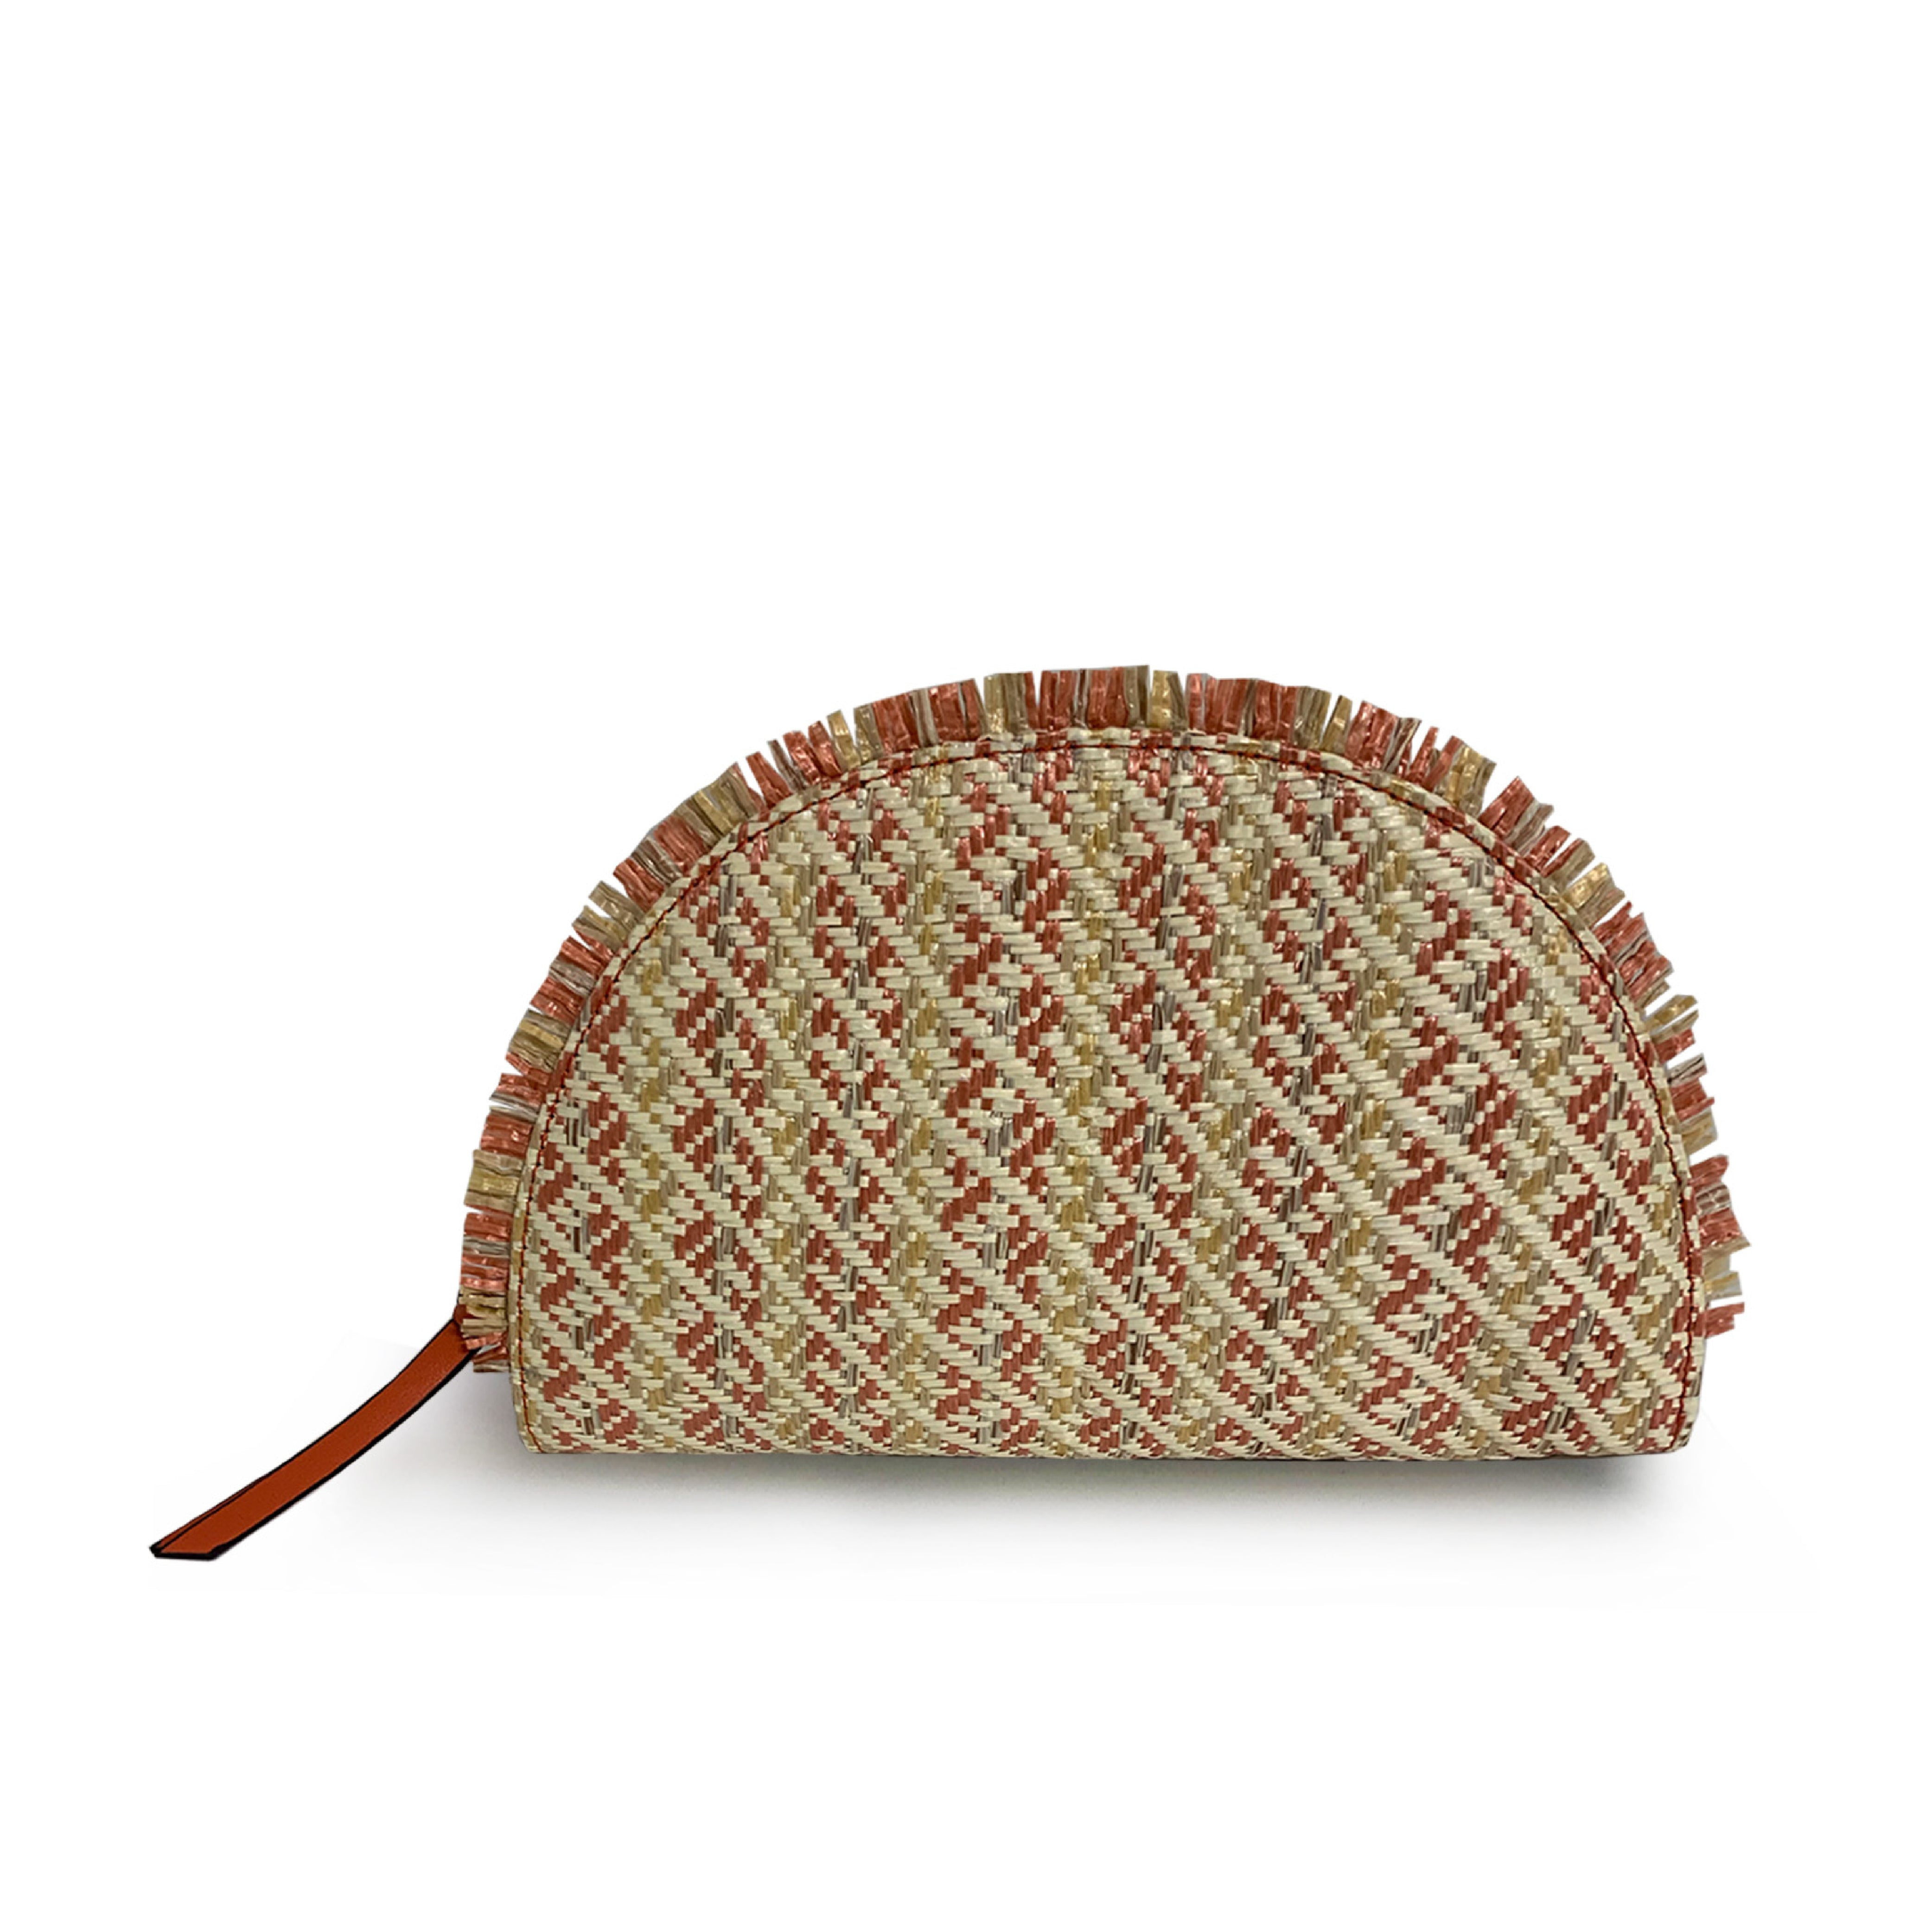 Woven Straw Taco Clutch with Frayed Trim